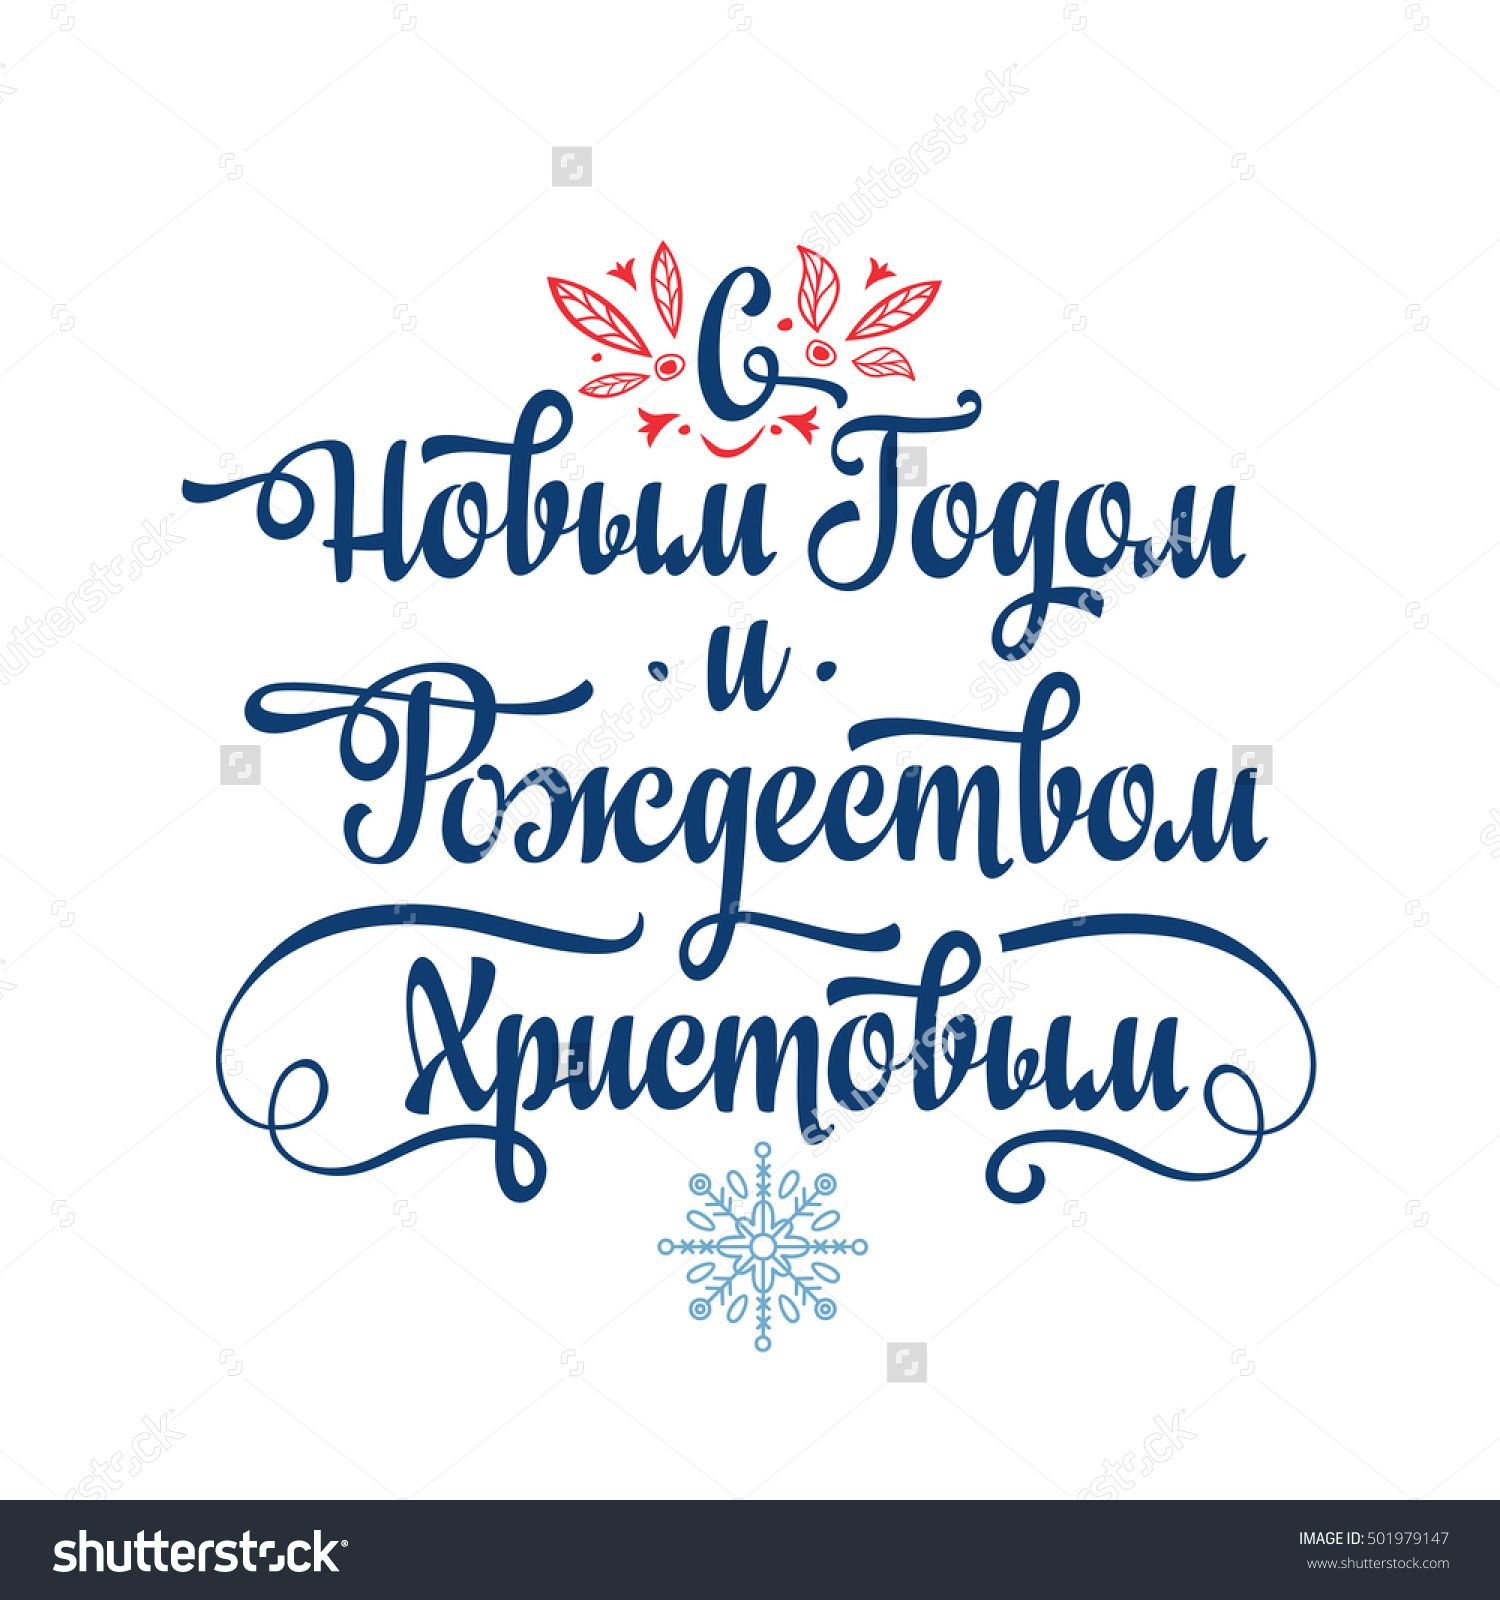 Christmas message lettering composition with phrase in russian christmas message lettering composition with phrase in russian language warm wishes for happy holidays kristyandbryce Choice Image